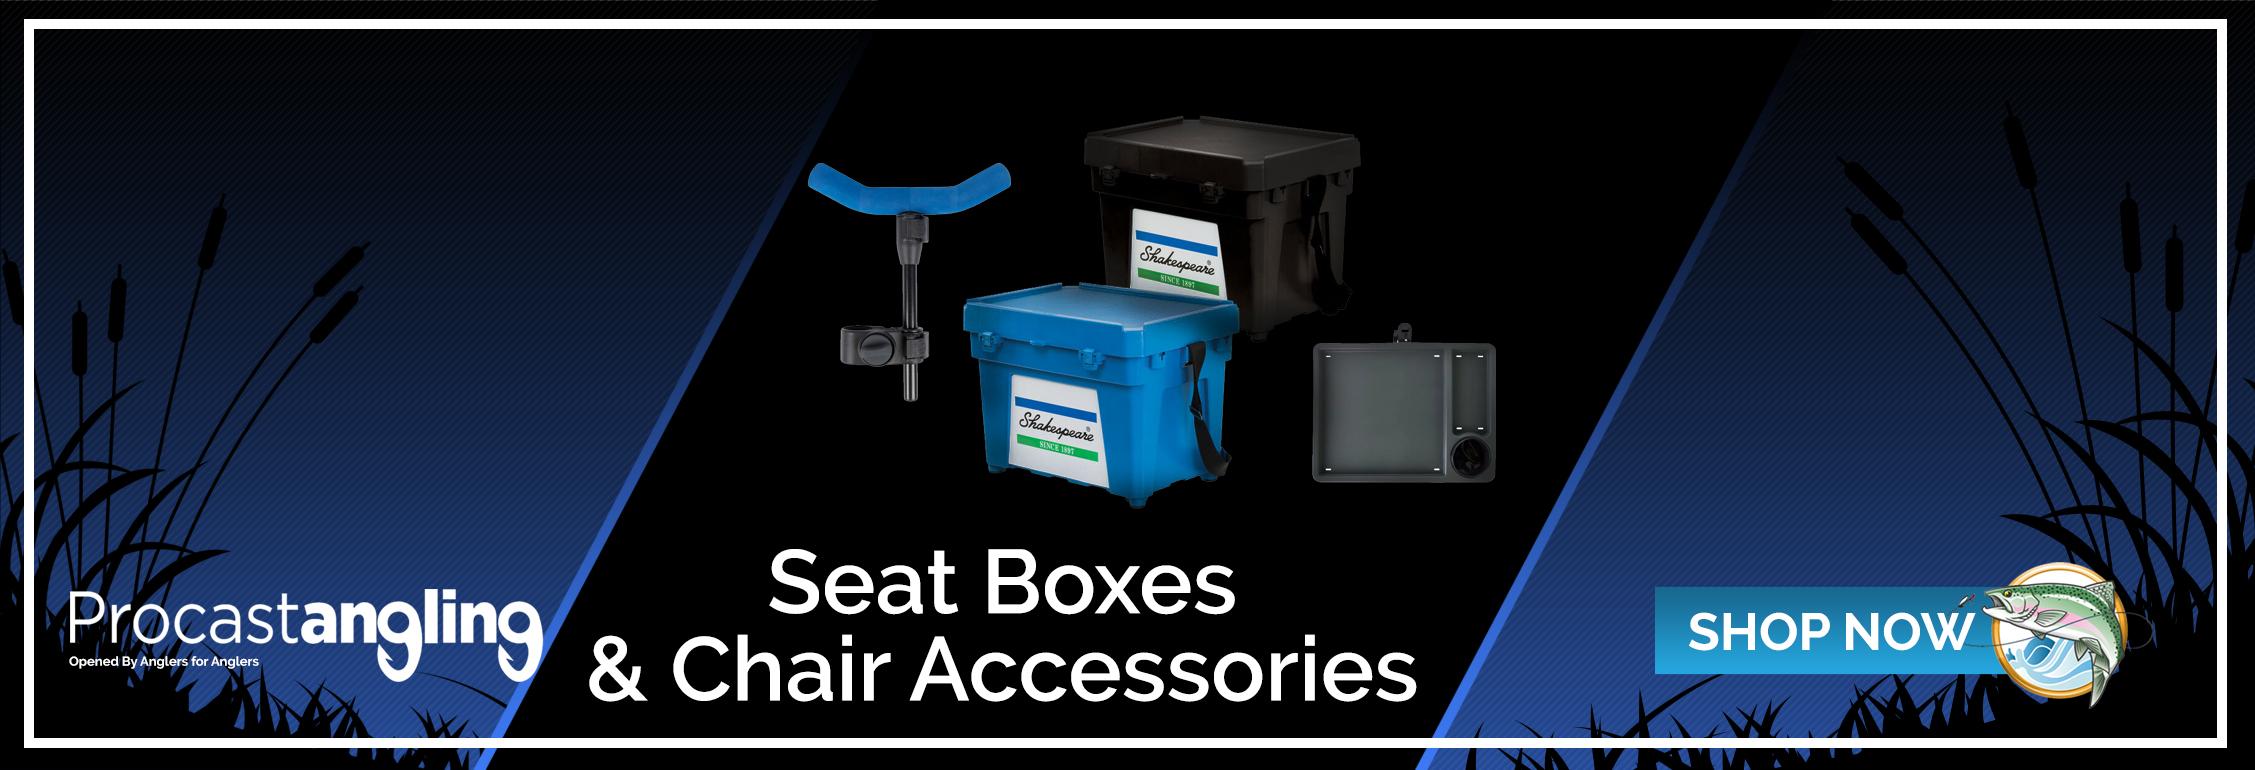 SEAT BOXES & CHAIR ACCESSORIES